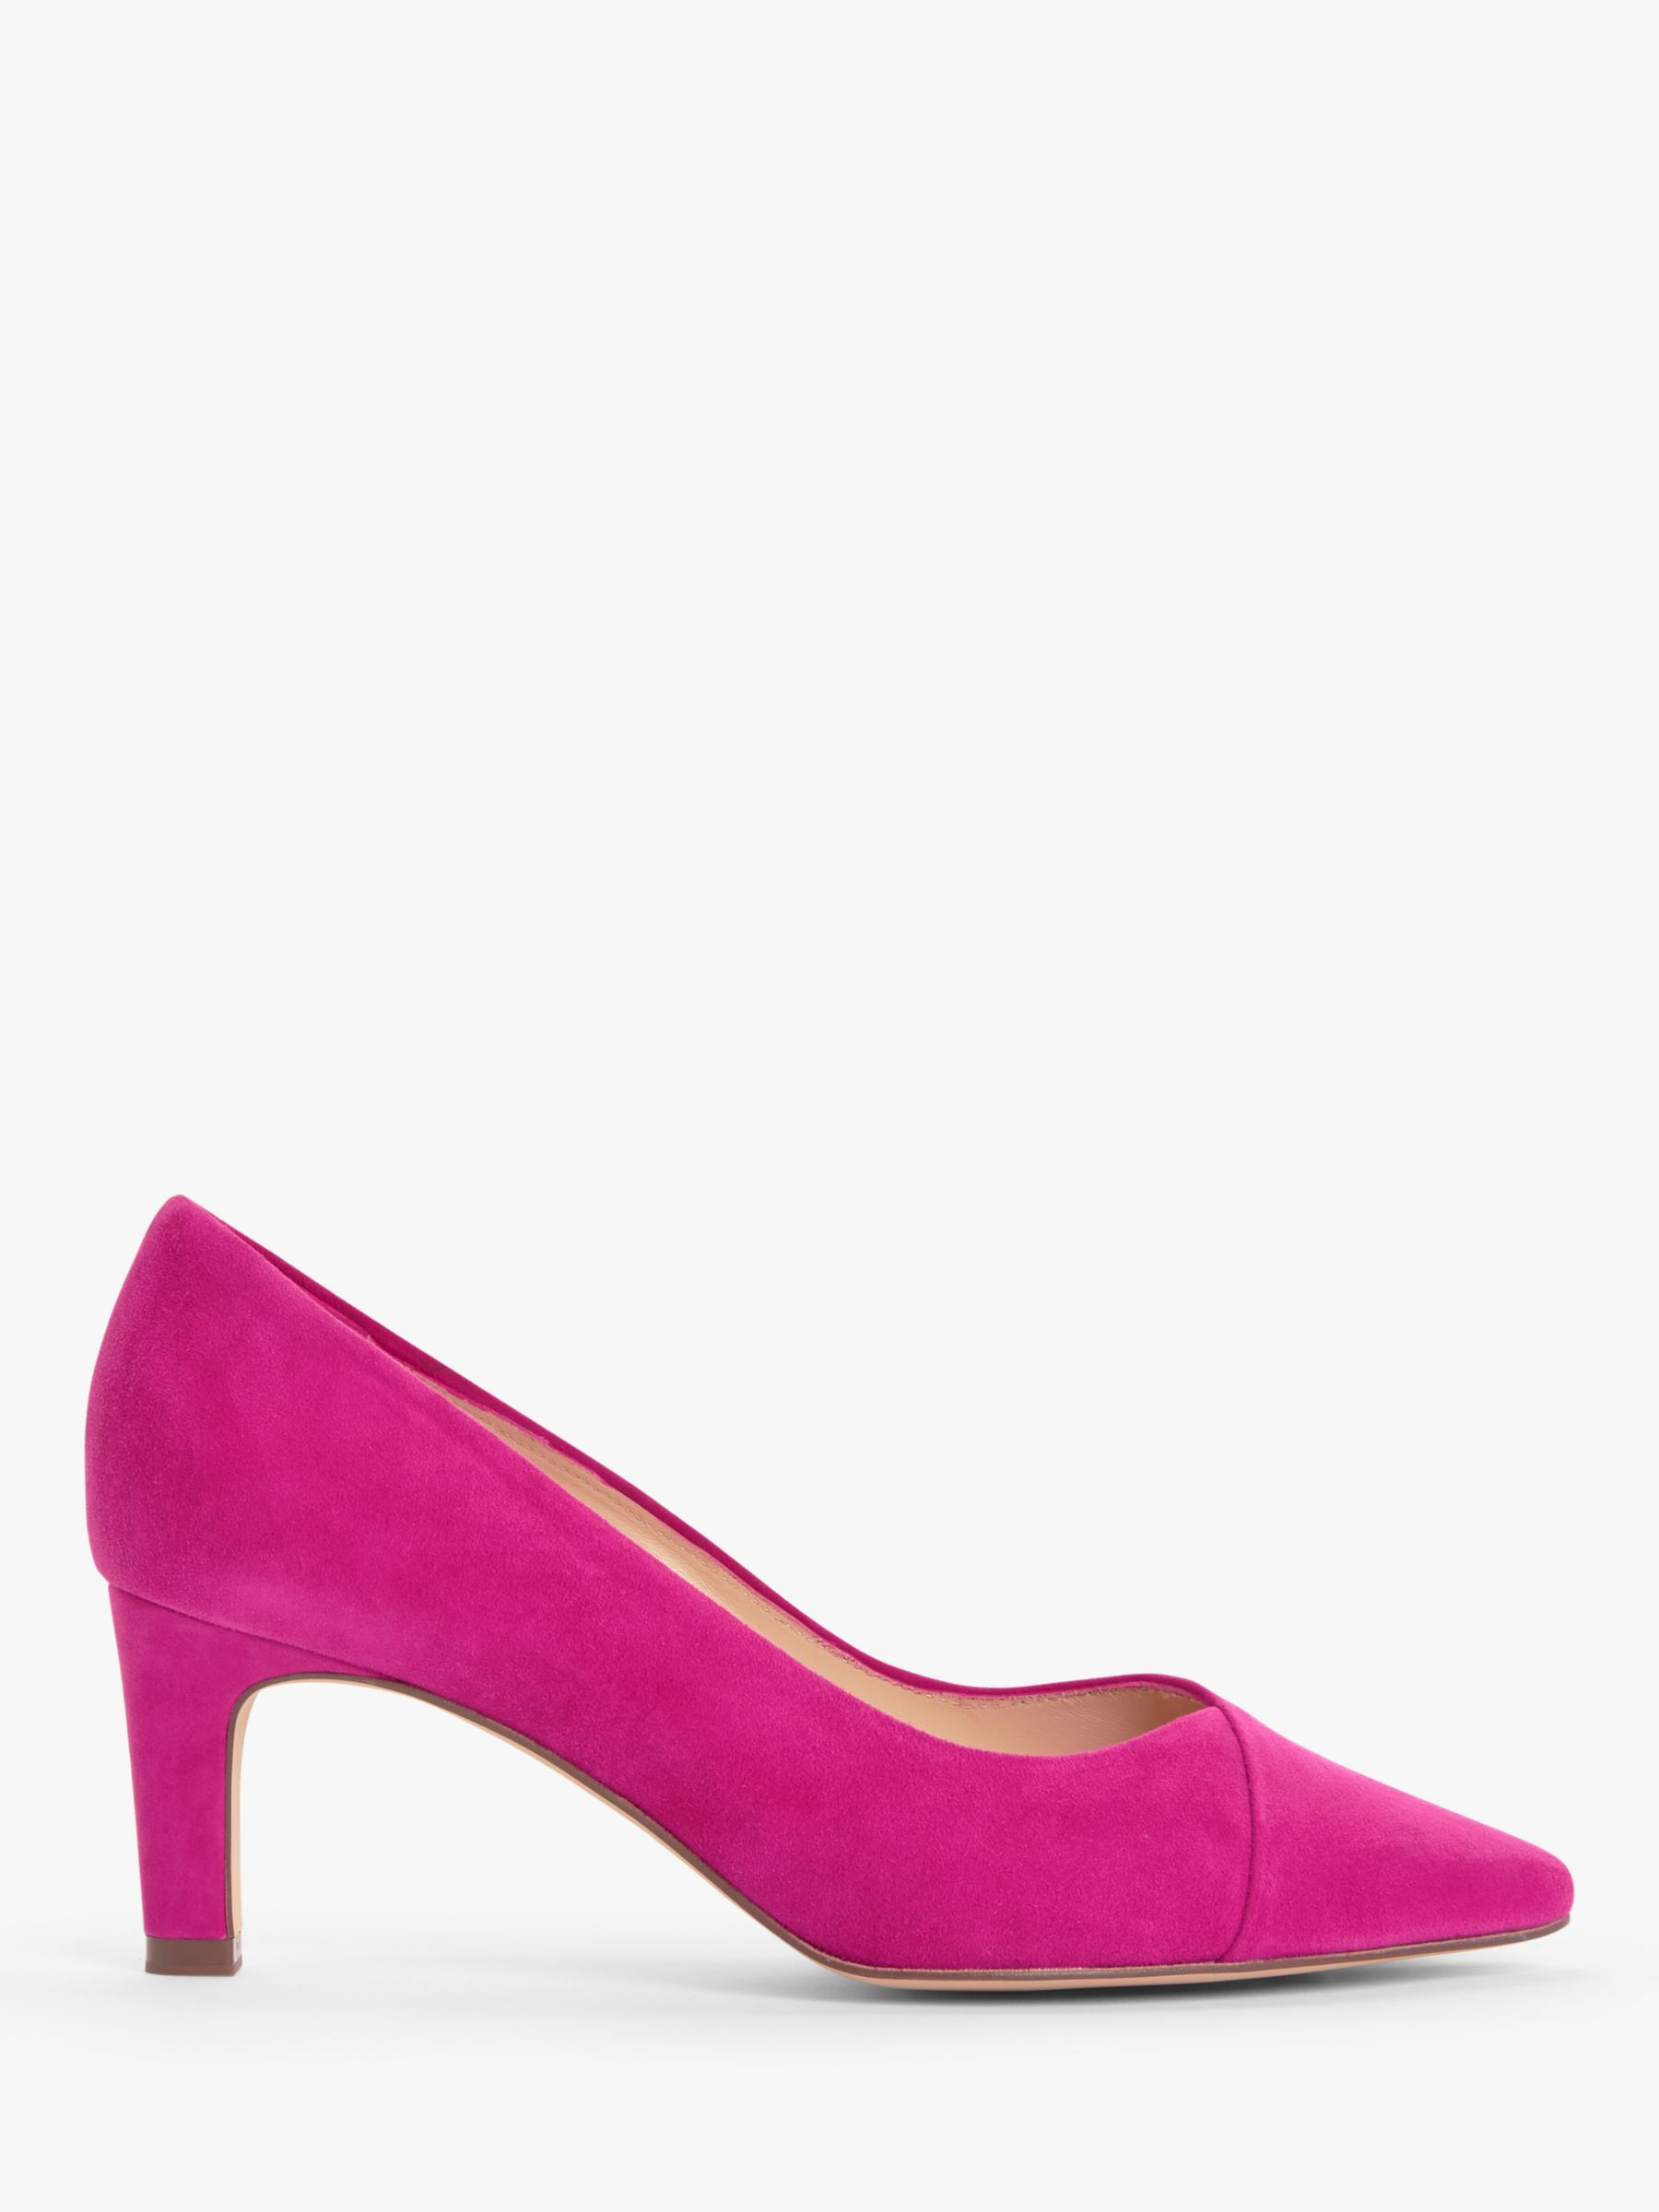 Peter Kaiser Peter Kaiser Maike Suede Court Shoes, Berry